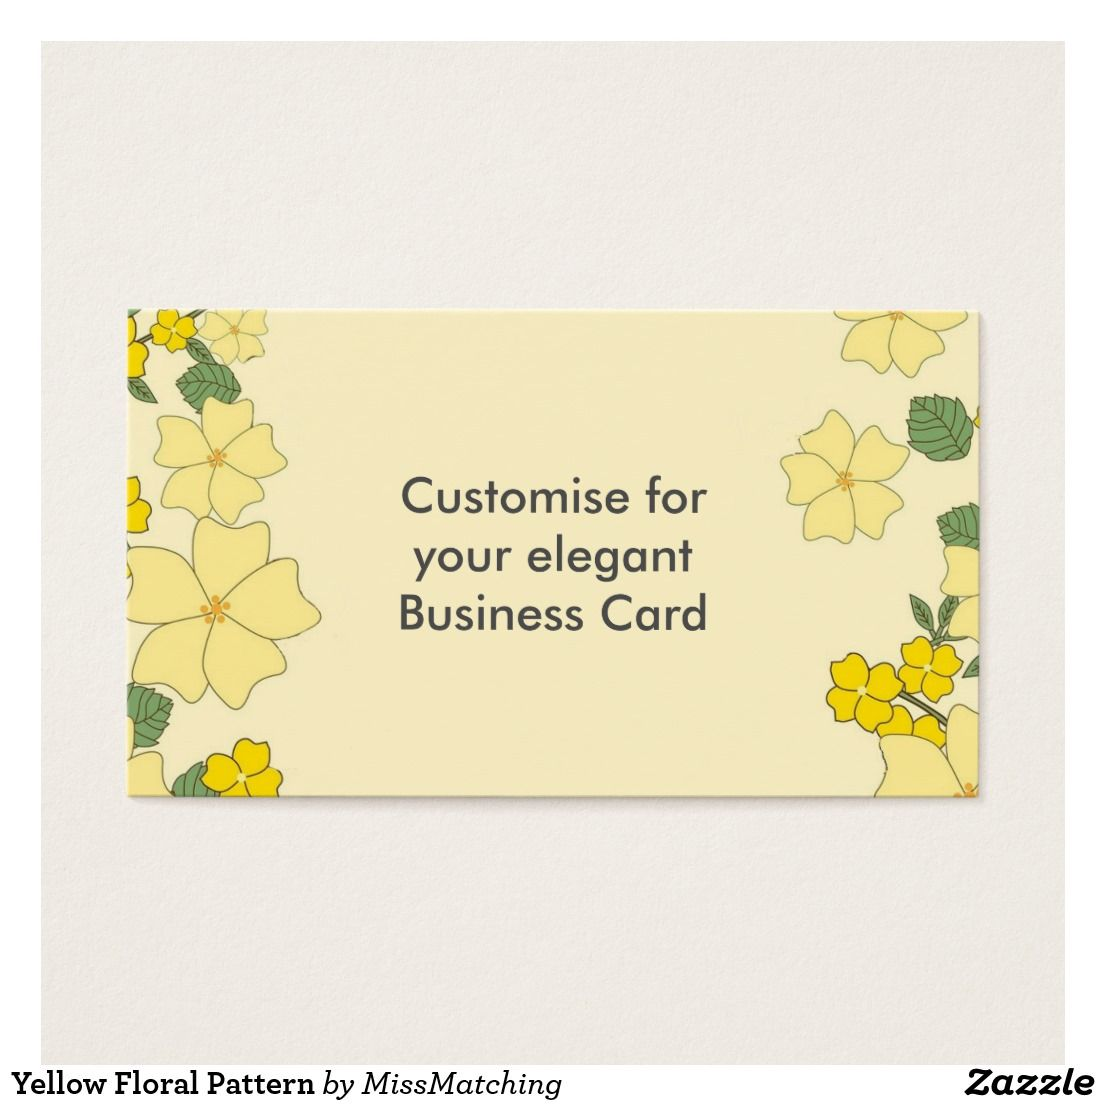 Yellow Floral Pattern Business Card